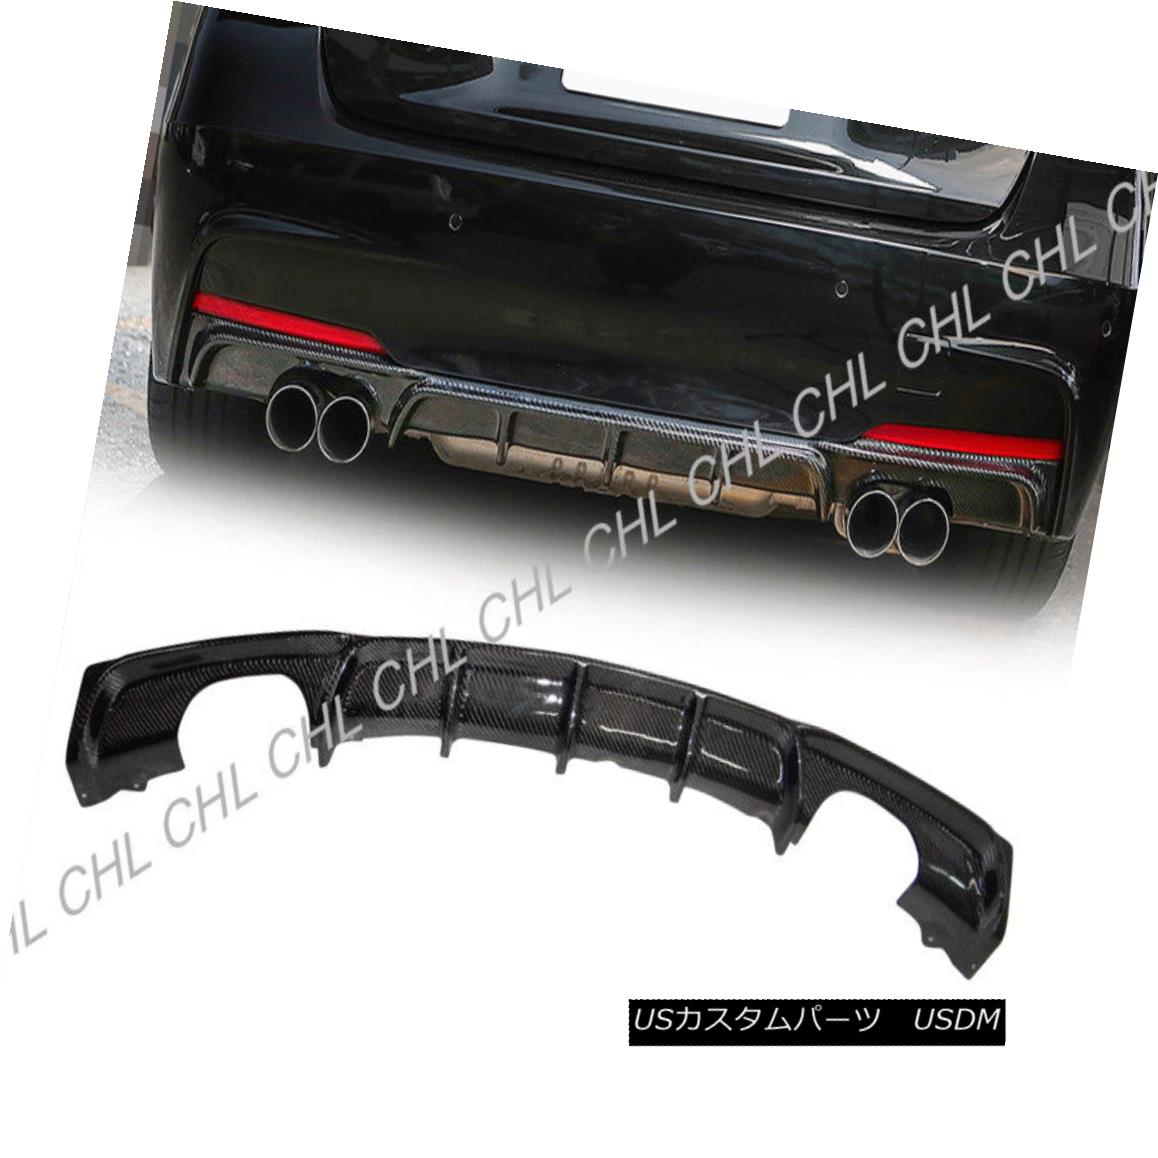 エアロパーツ P Stye Carbon Fiber Carbon Rear Diffuser (Quad Tips) P (Quad For 12-17 BMW F30 3-Series M-Sport P Stye炭素繊維リアディフューザー(クワッドチップ)12-17 BMW F30 3シリーズM-スポーツ, 子供のズボン屋:6ffa268f --- officewill.xsrv.jp